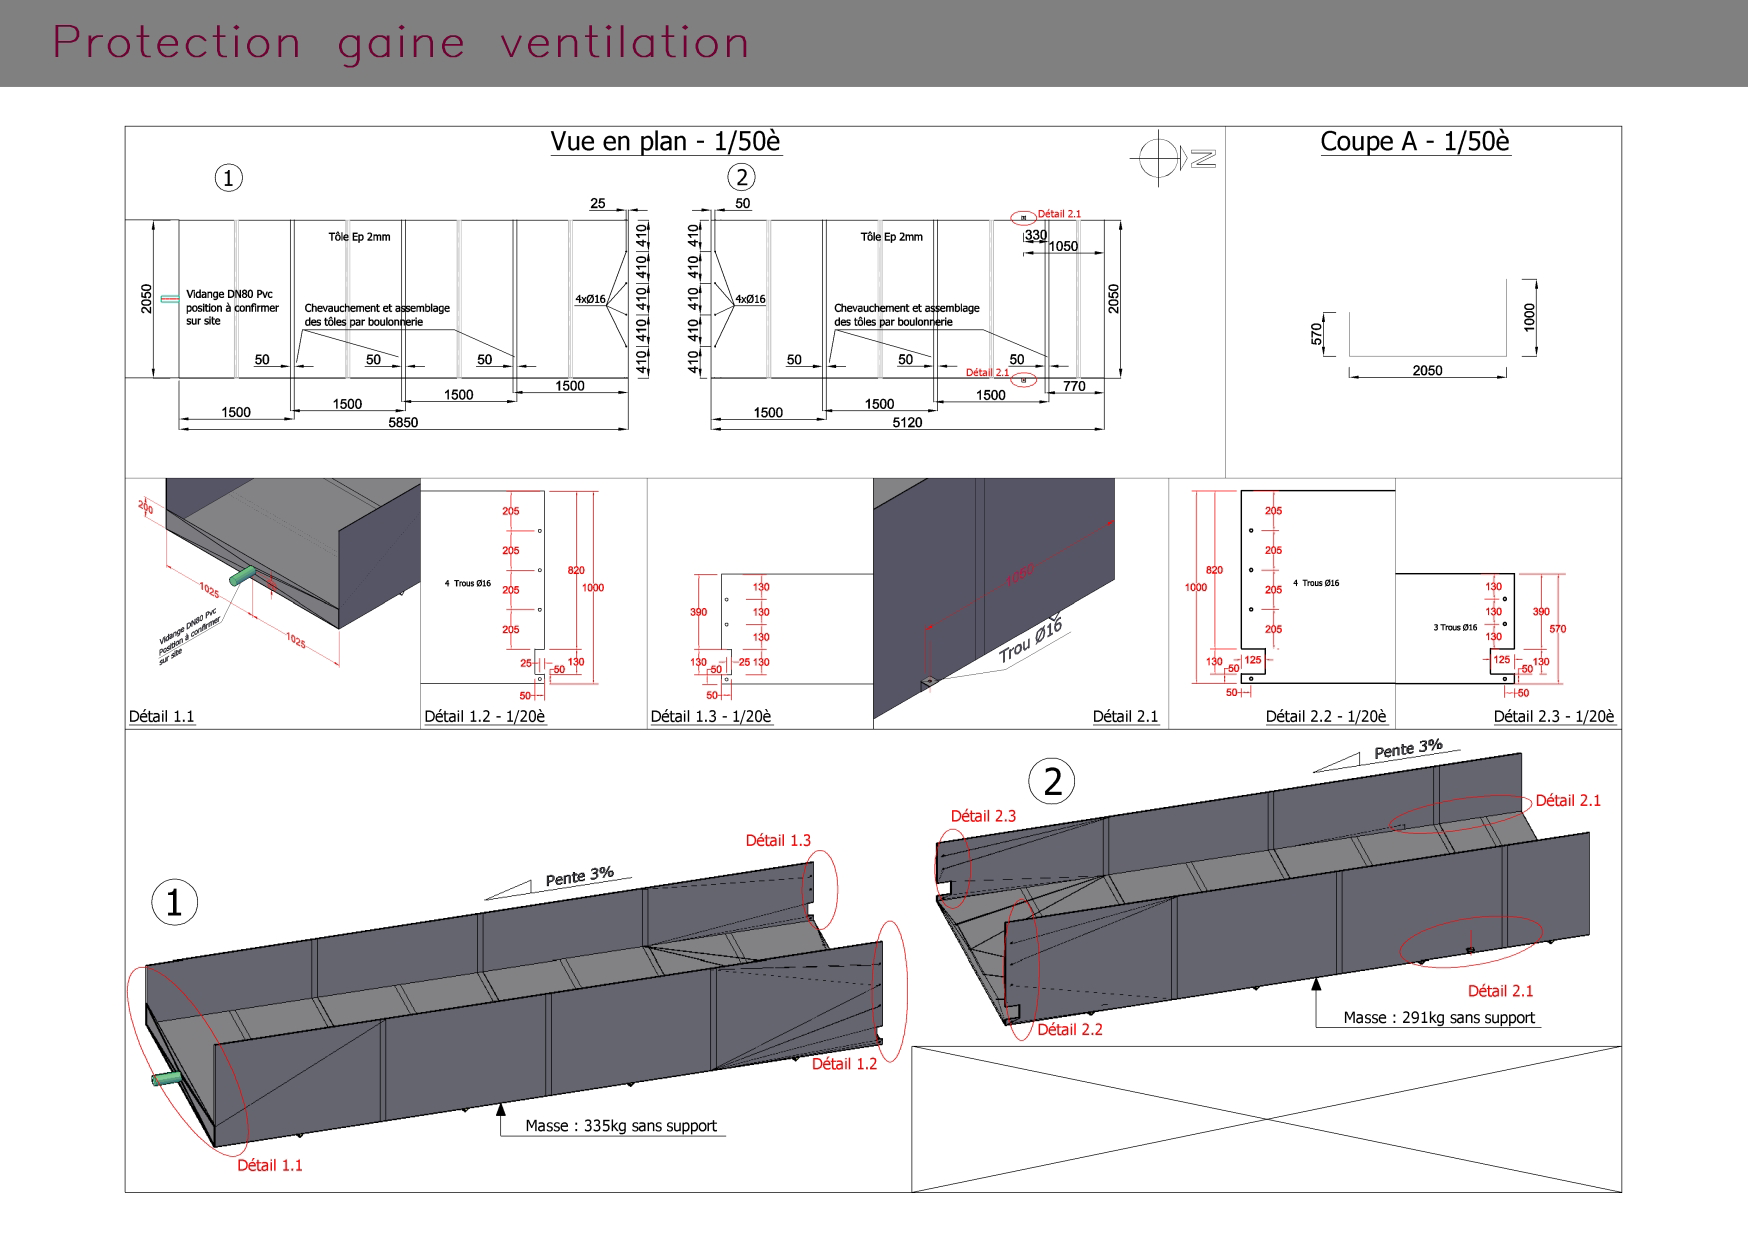 Protection gaine ventilation : plans et coupes